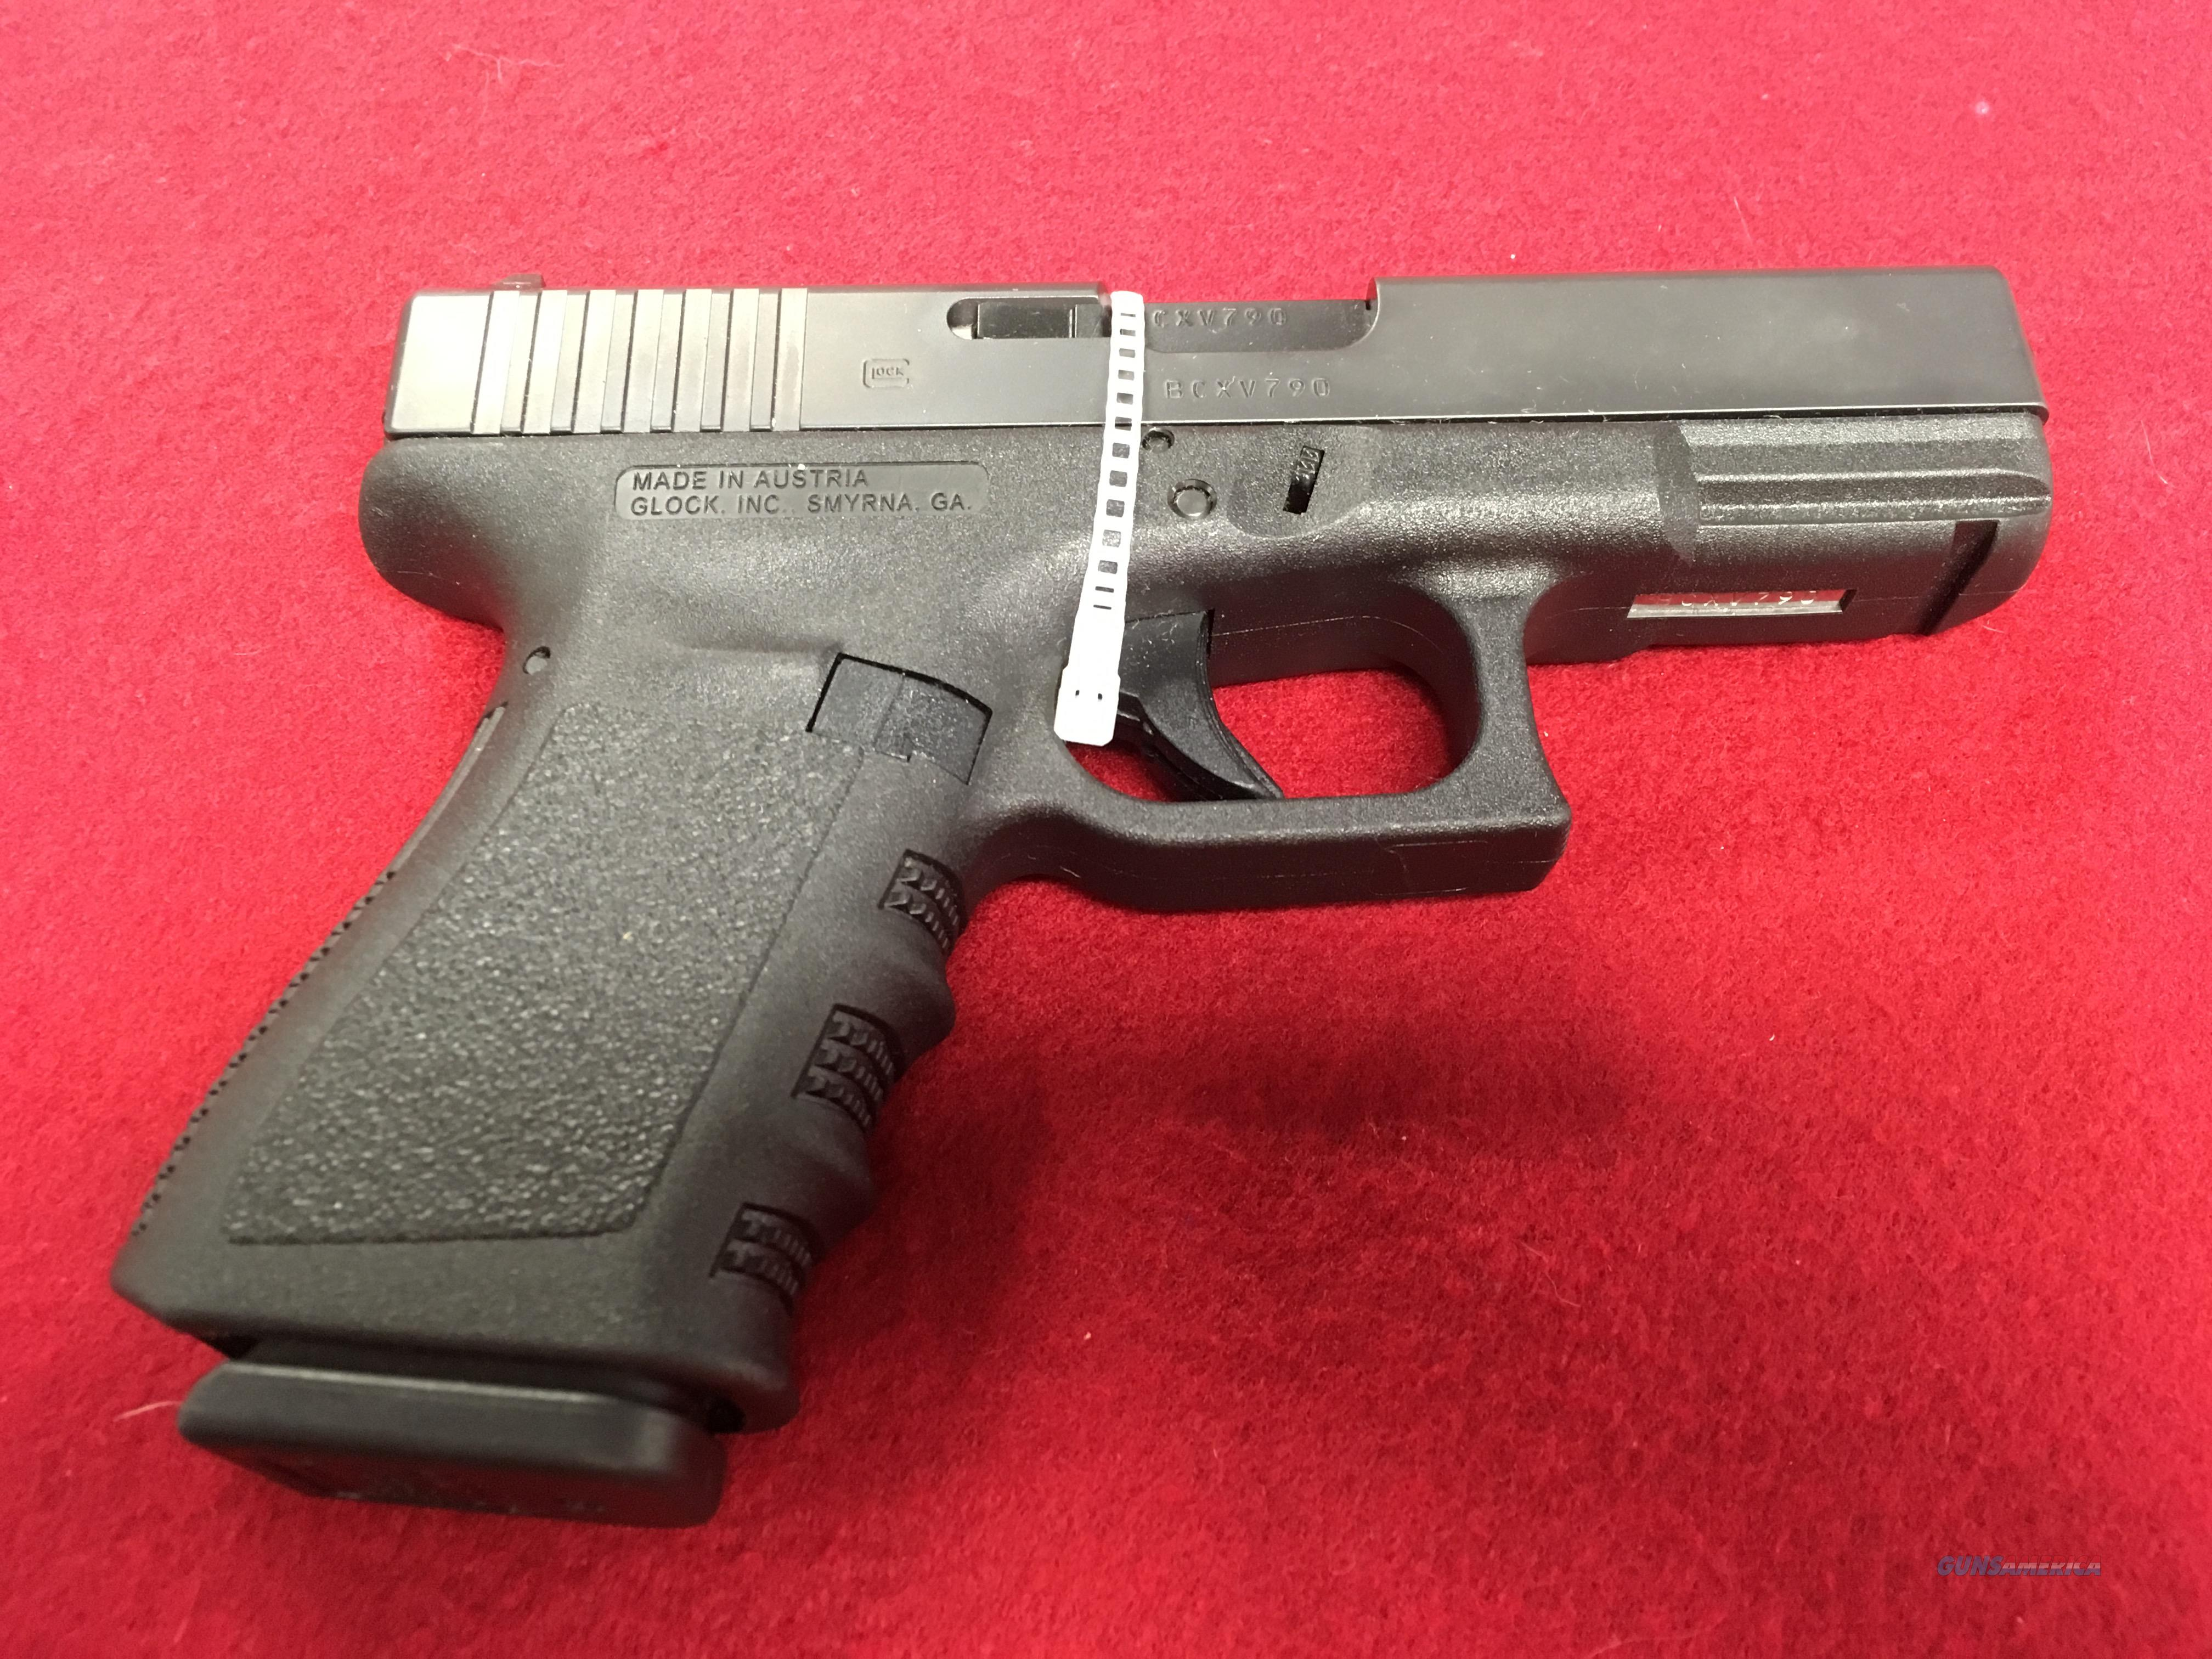 GLOCK 23 40 SMITH & WESSON NEW  Guns > Pistols > Glock Pistols > 23